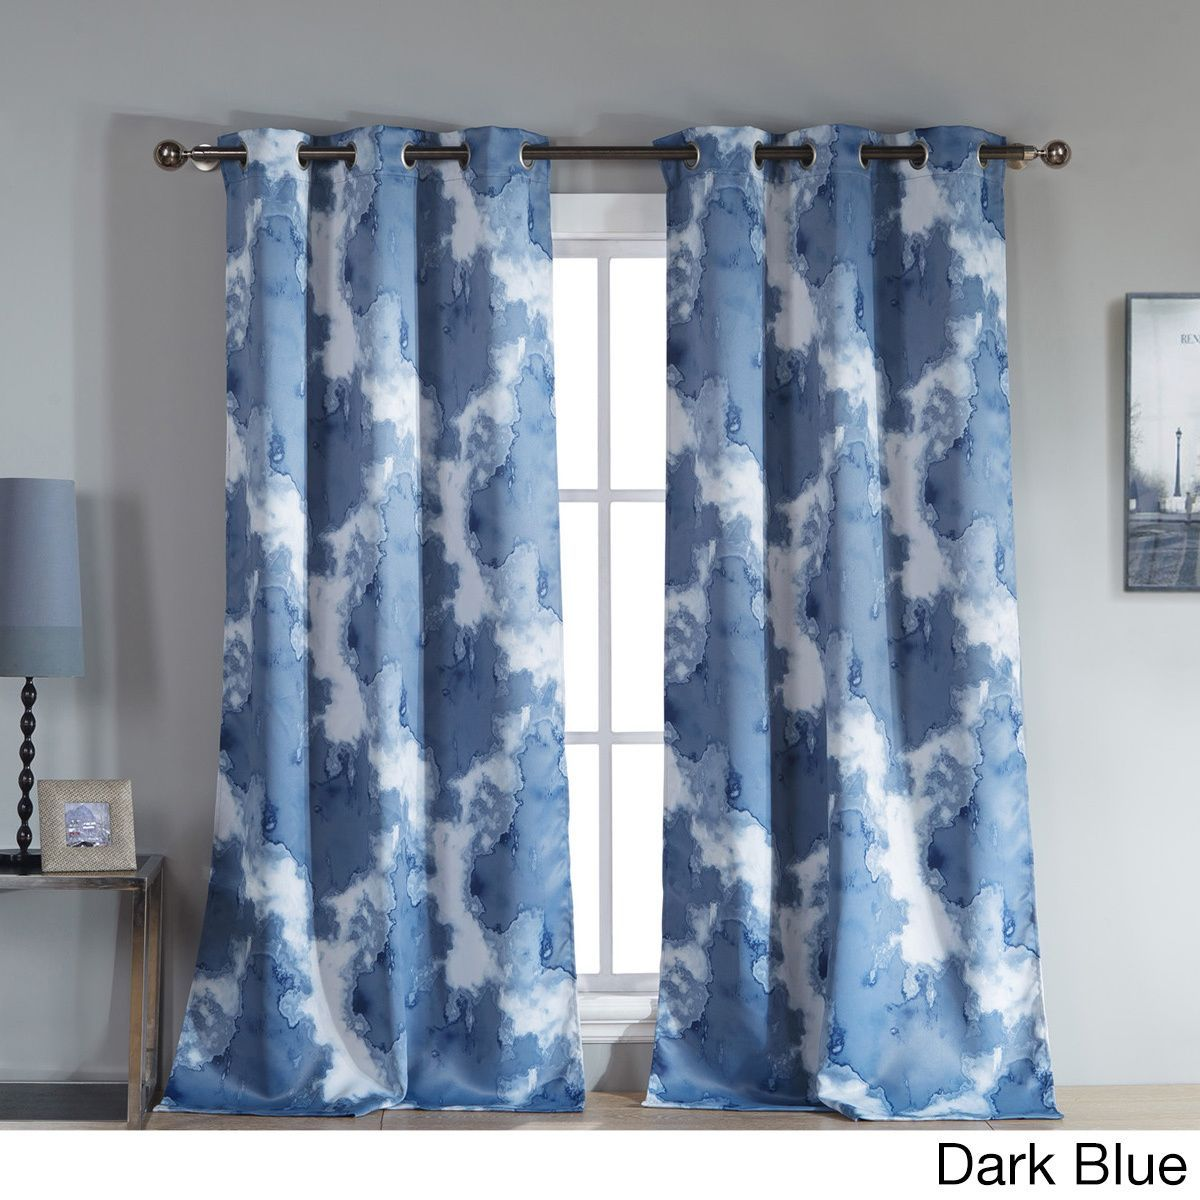 Dark Blue And Grey Curtains Duck River Grommet Top Thermal Insulated Blackout Curtain Panel